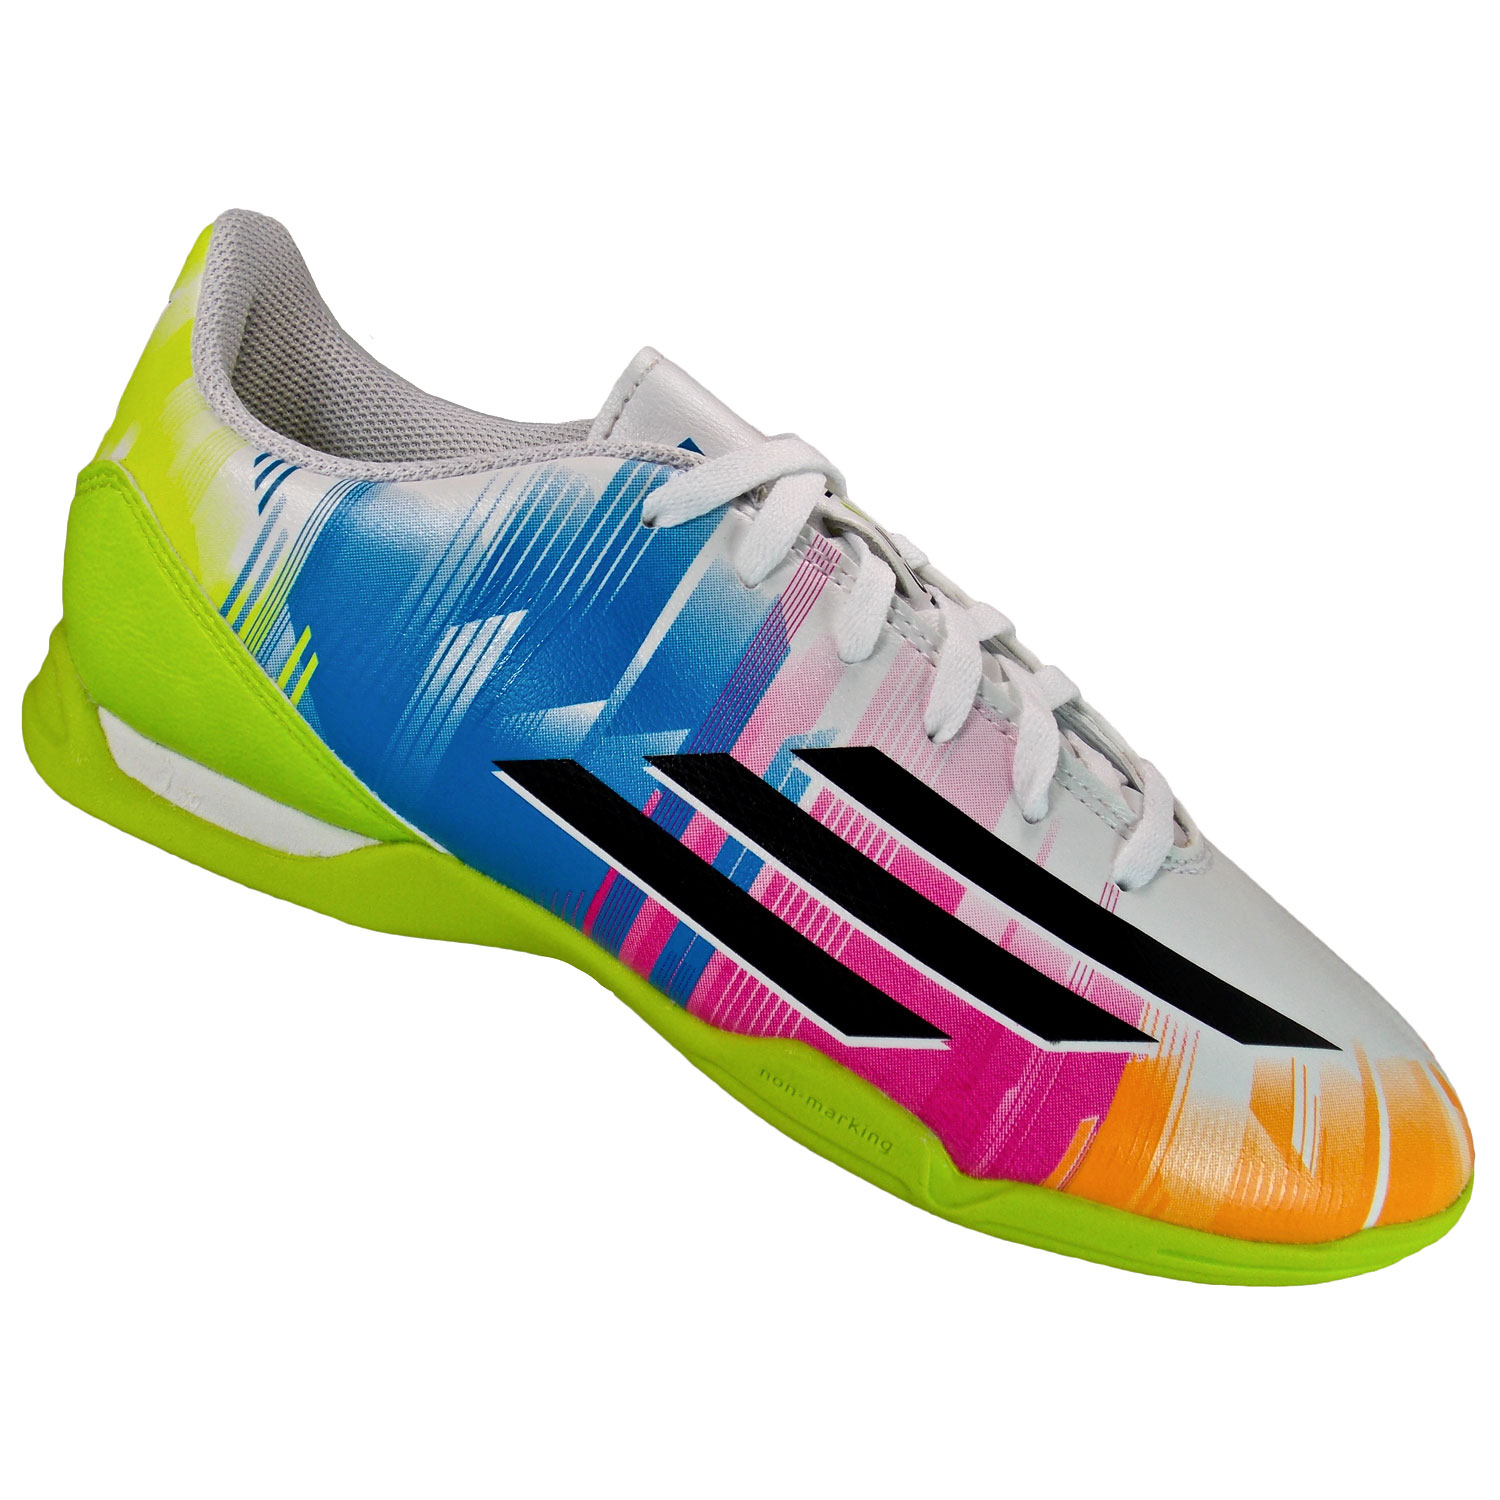 Adidas Mexico Soccer Shoes